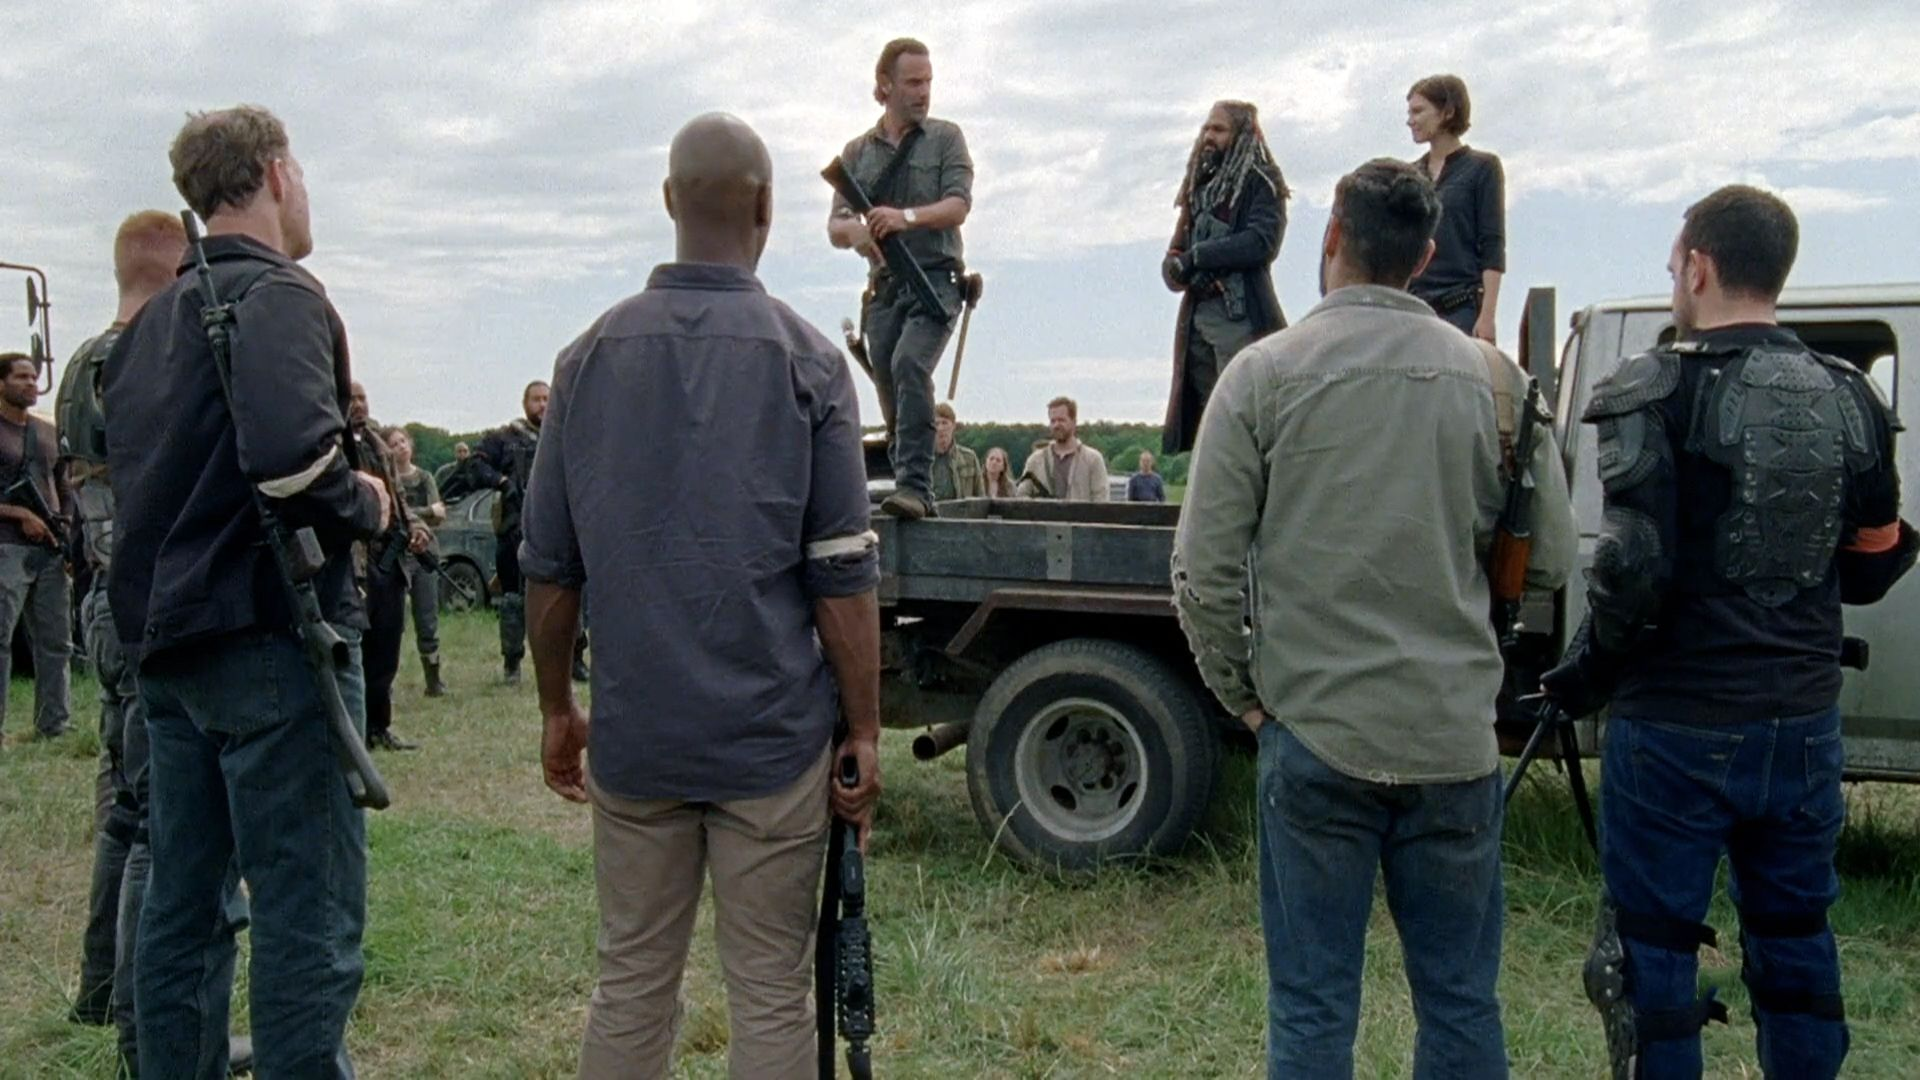 Rick and his group, along with the Kingdom and Hilltop, have banded together to bring the fight to Negan and the Saviors.